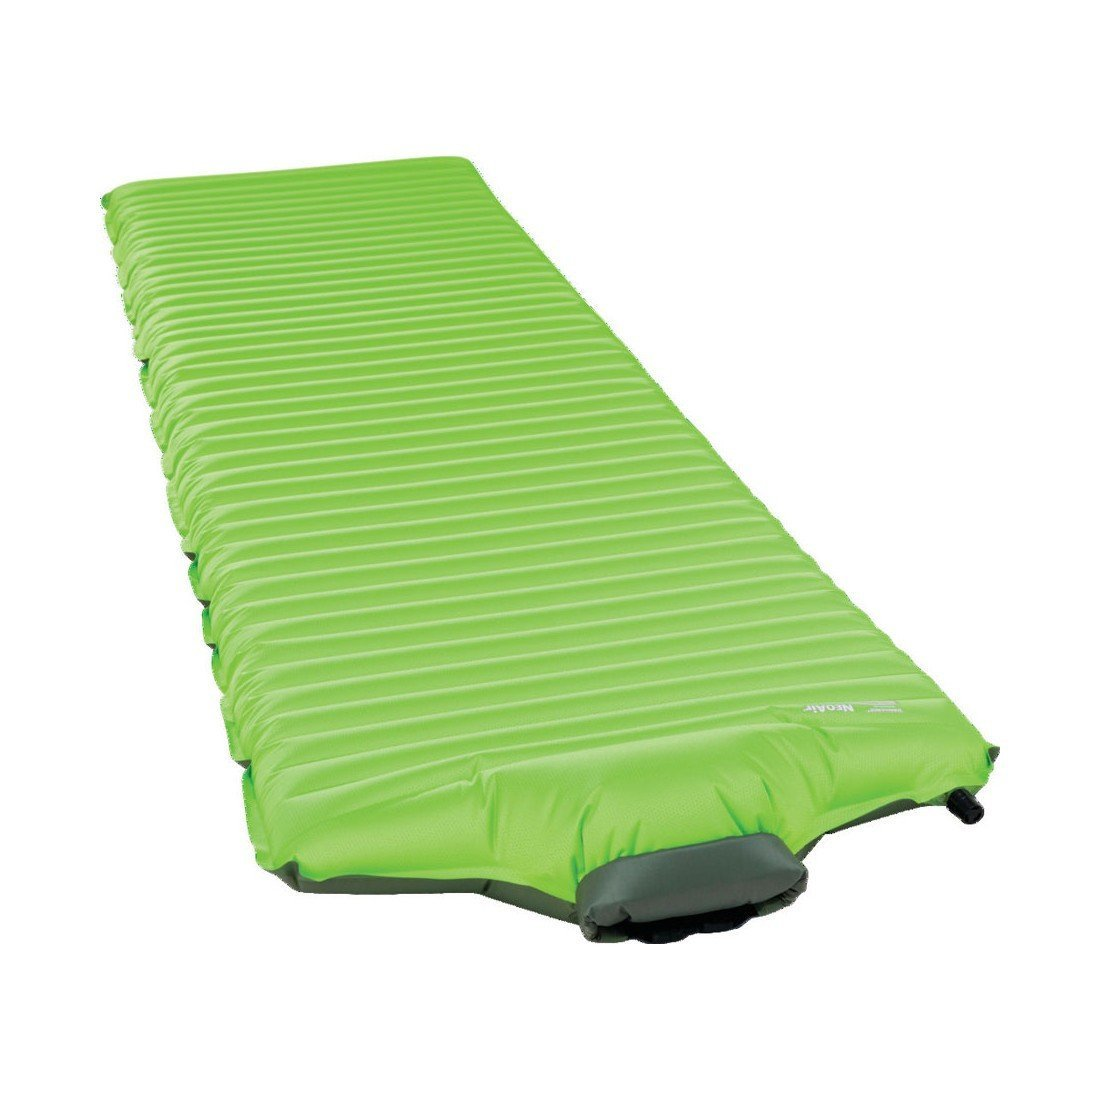 Thermarest NeoAir All Season SV Wide camping mat, shown inflated and laid flat